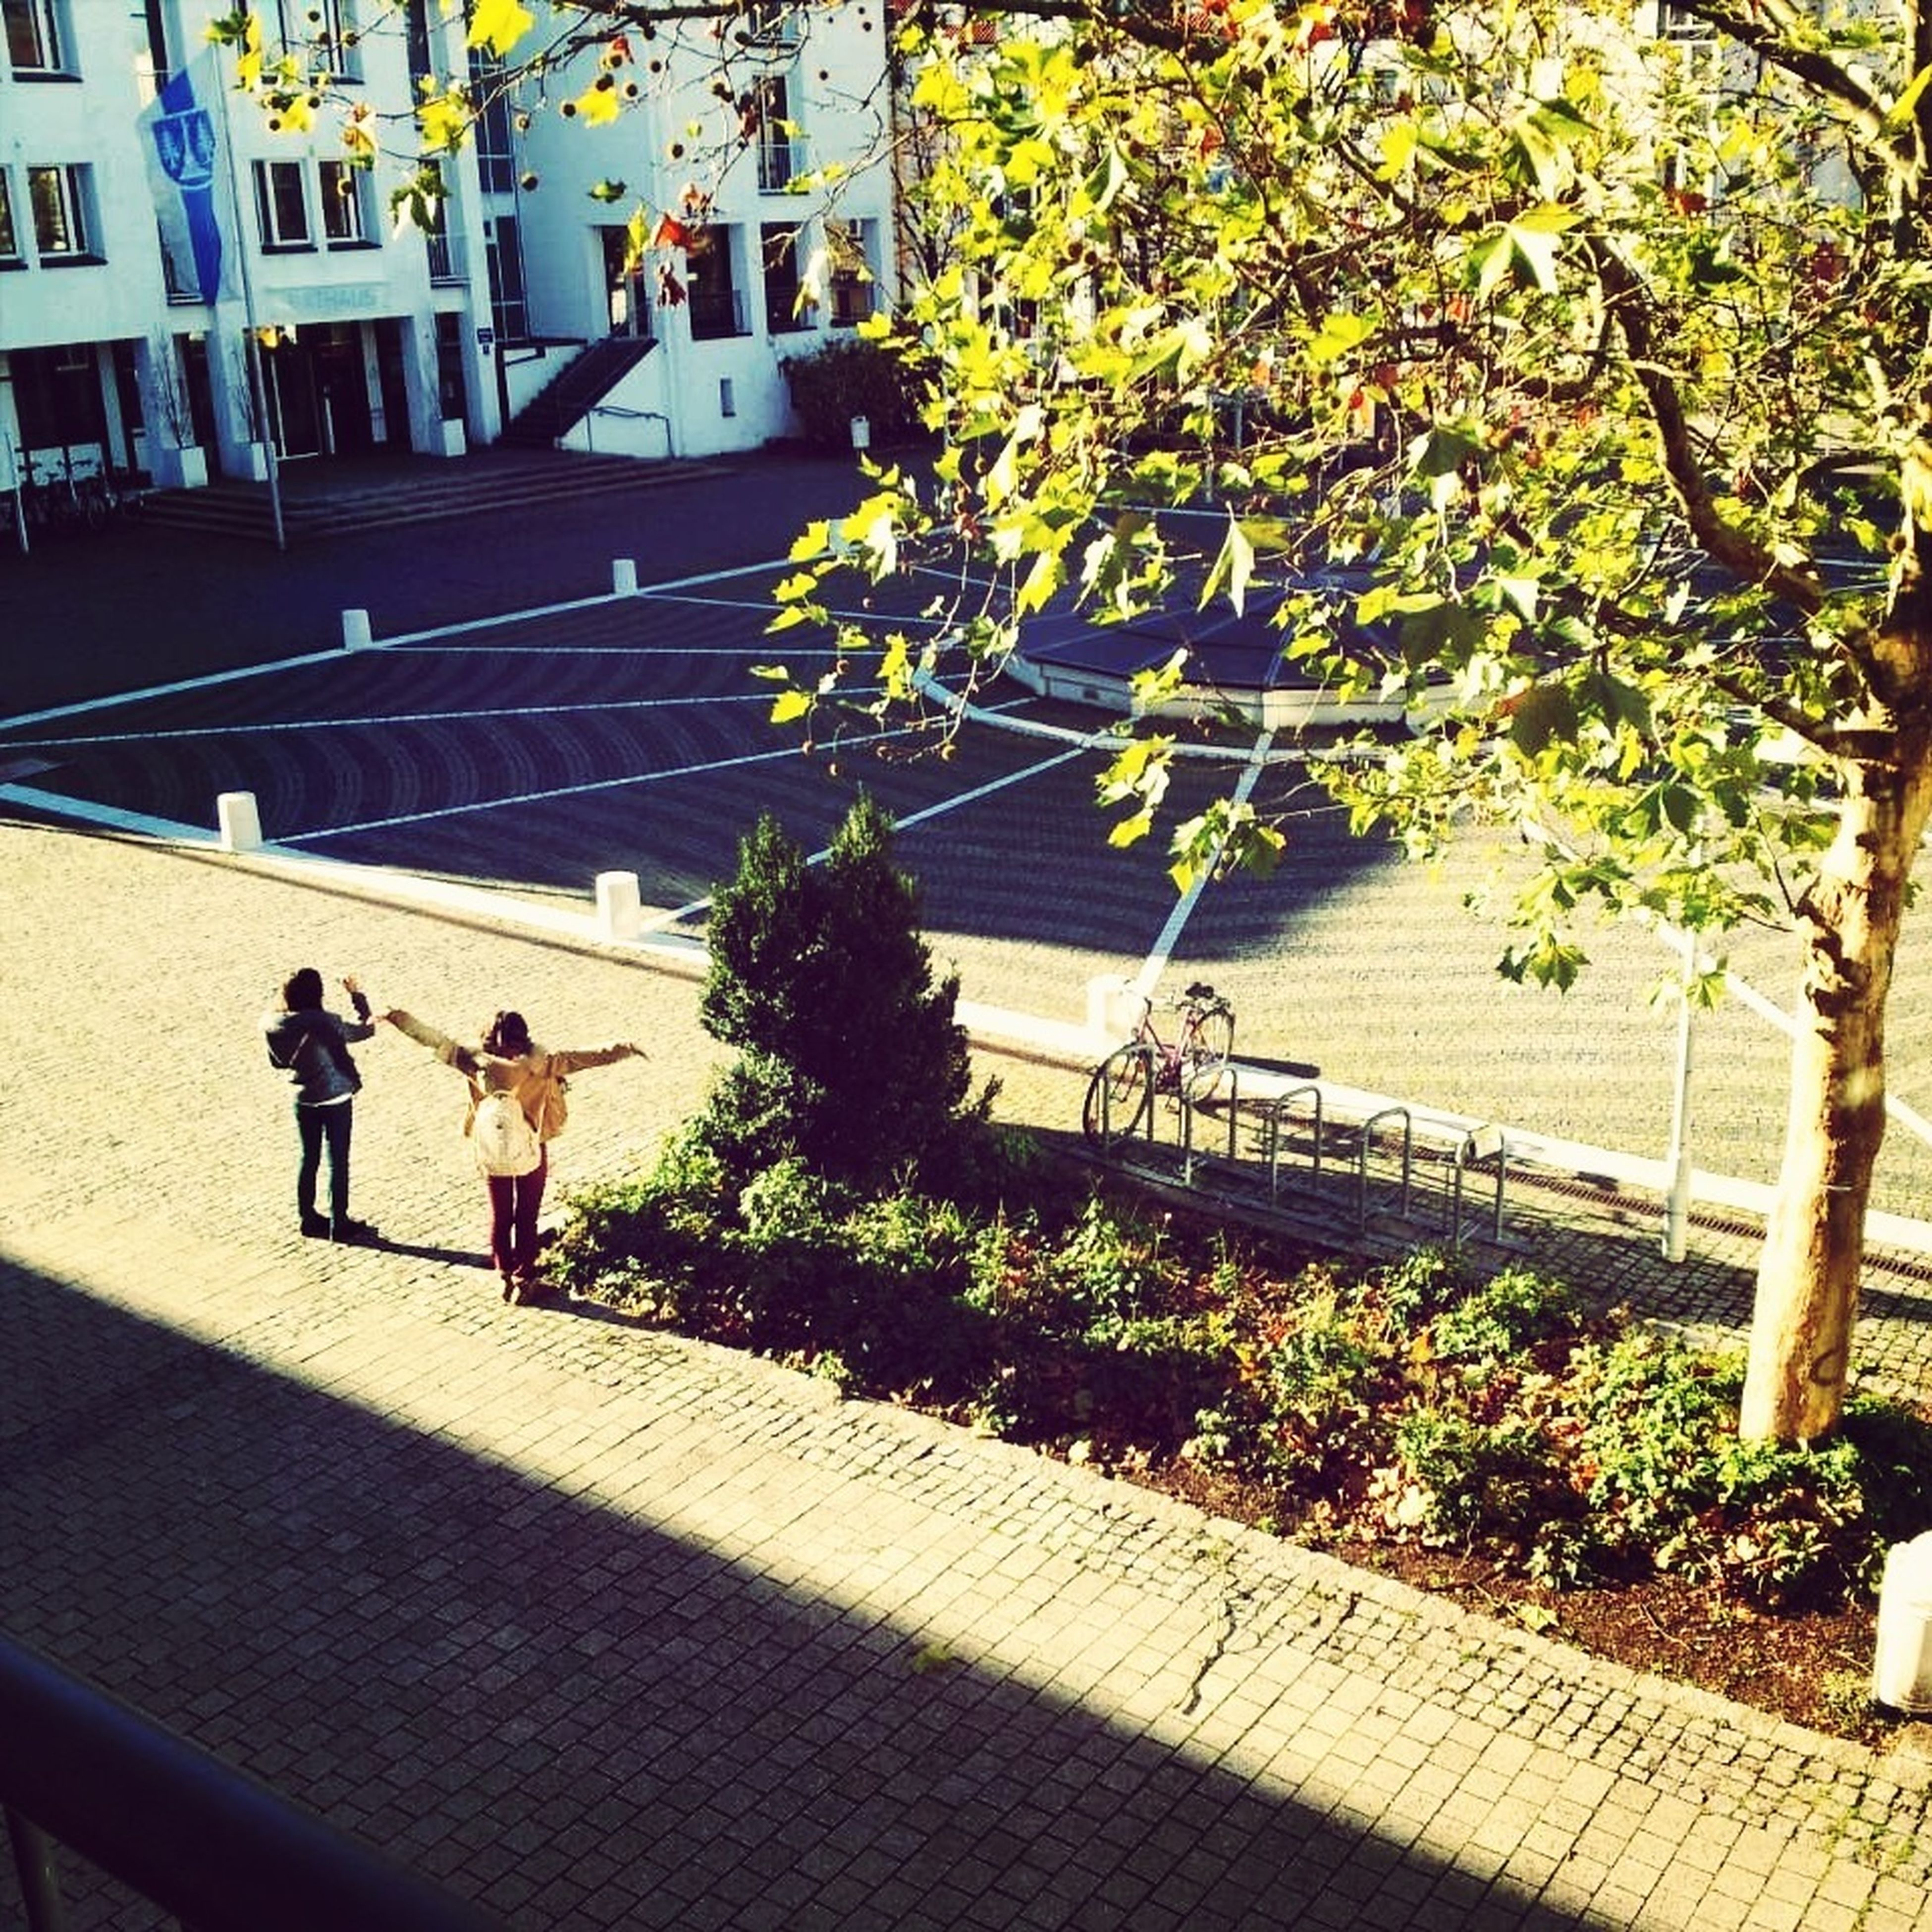 men, person, lifestyles, architecture, building exterior, walking, built structure, shadow, leisure activity, sunlight, tree, high angle view, city, city life, railing, medium group of people, day, outdoors, street